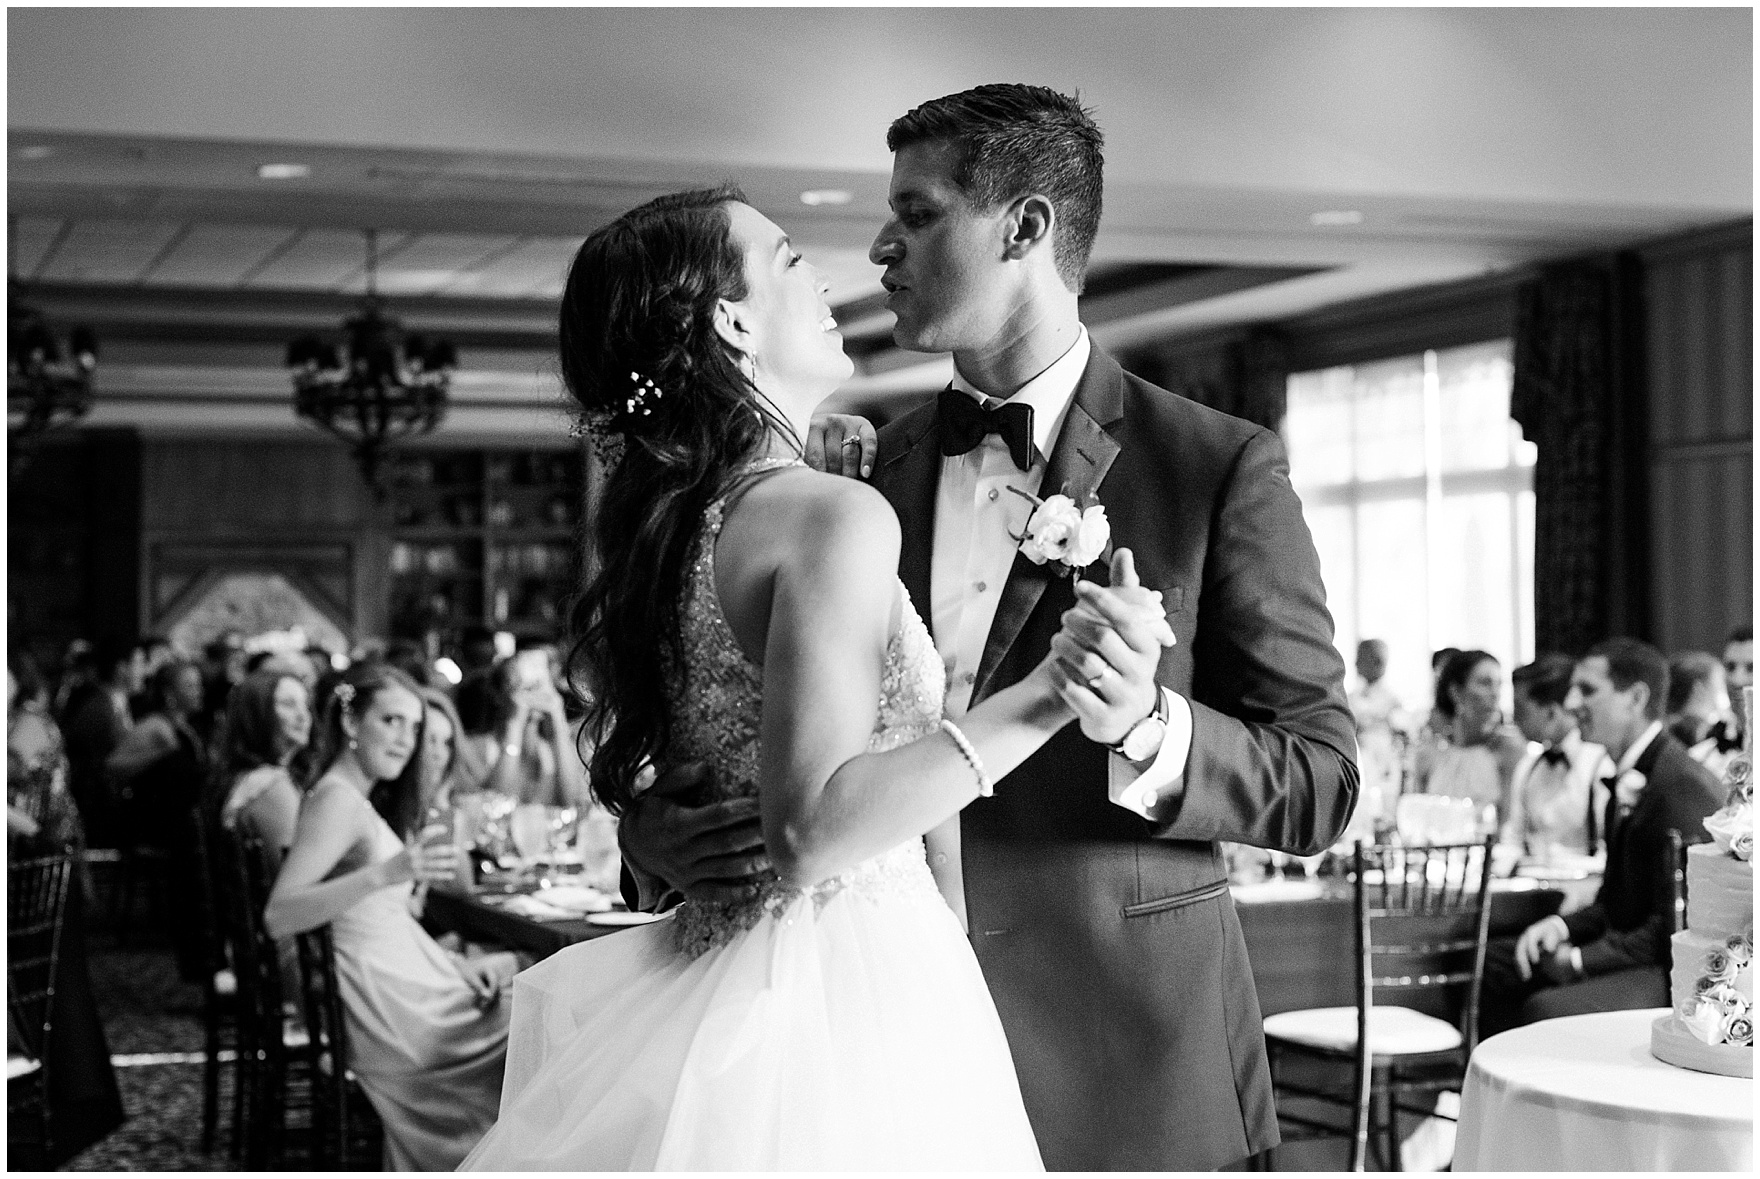 The bride and groom share their first dance during a Biltmore Country Club Barrington wedding.